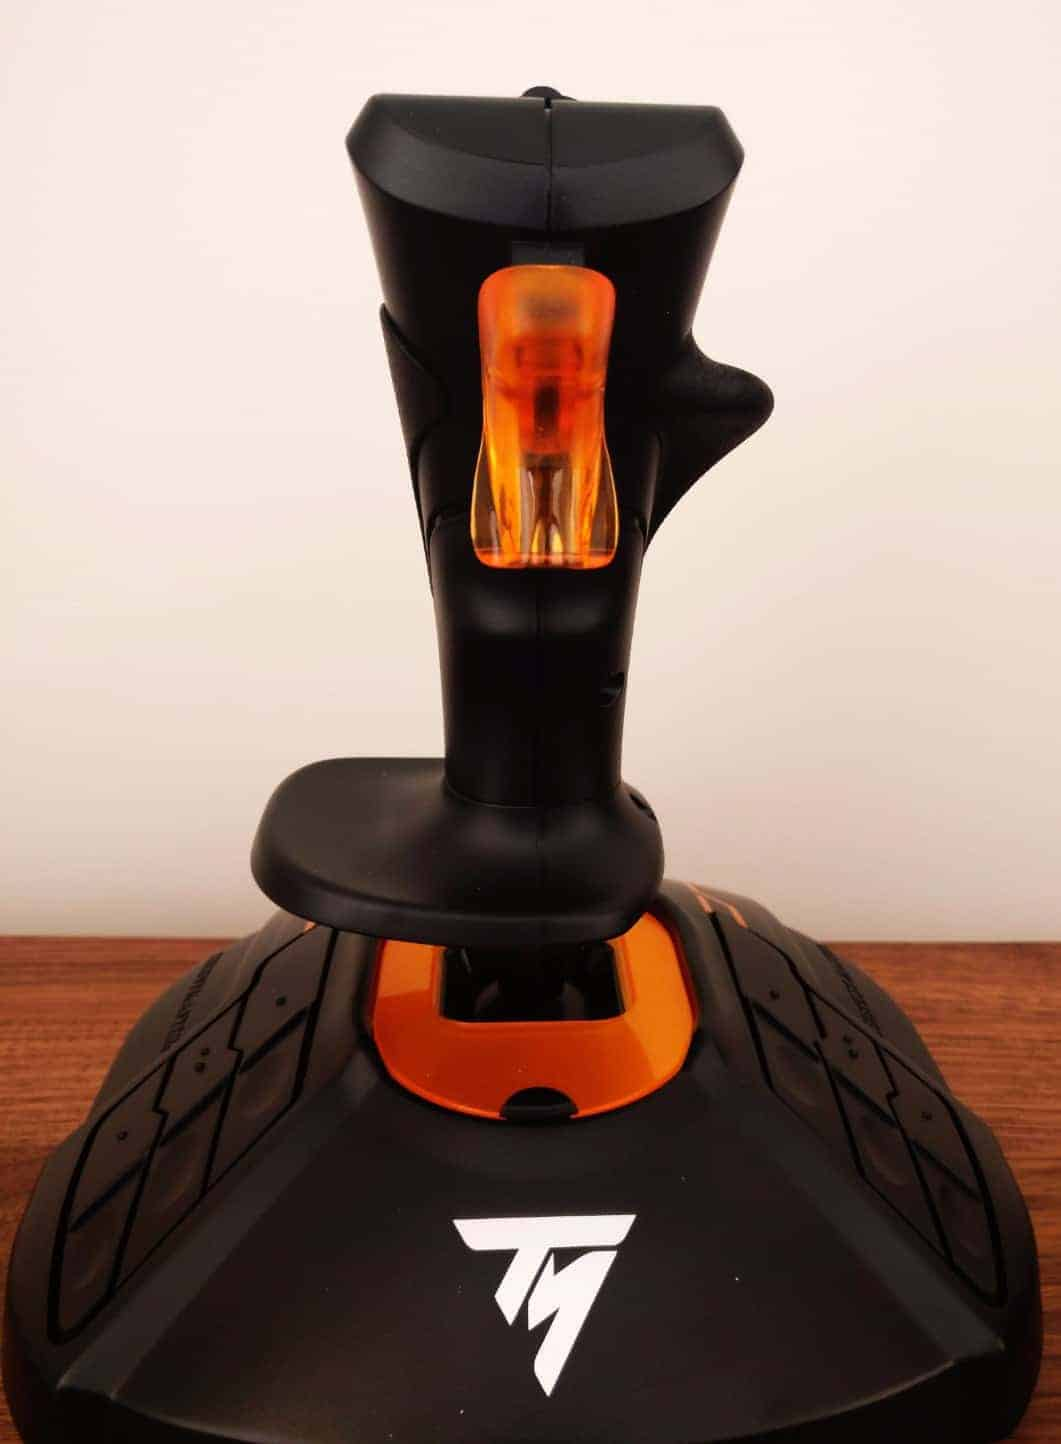 Thrustmaster T 16000M FCS Hotas Joystick Review - The